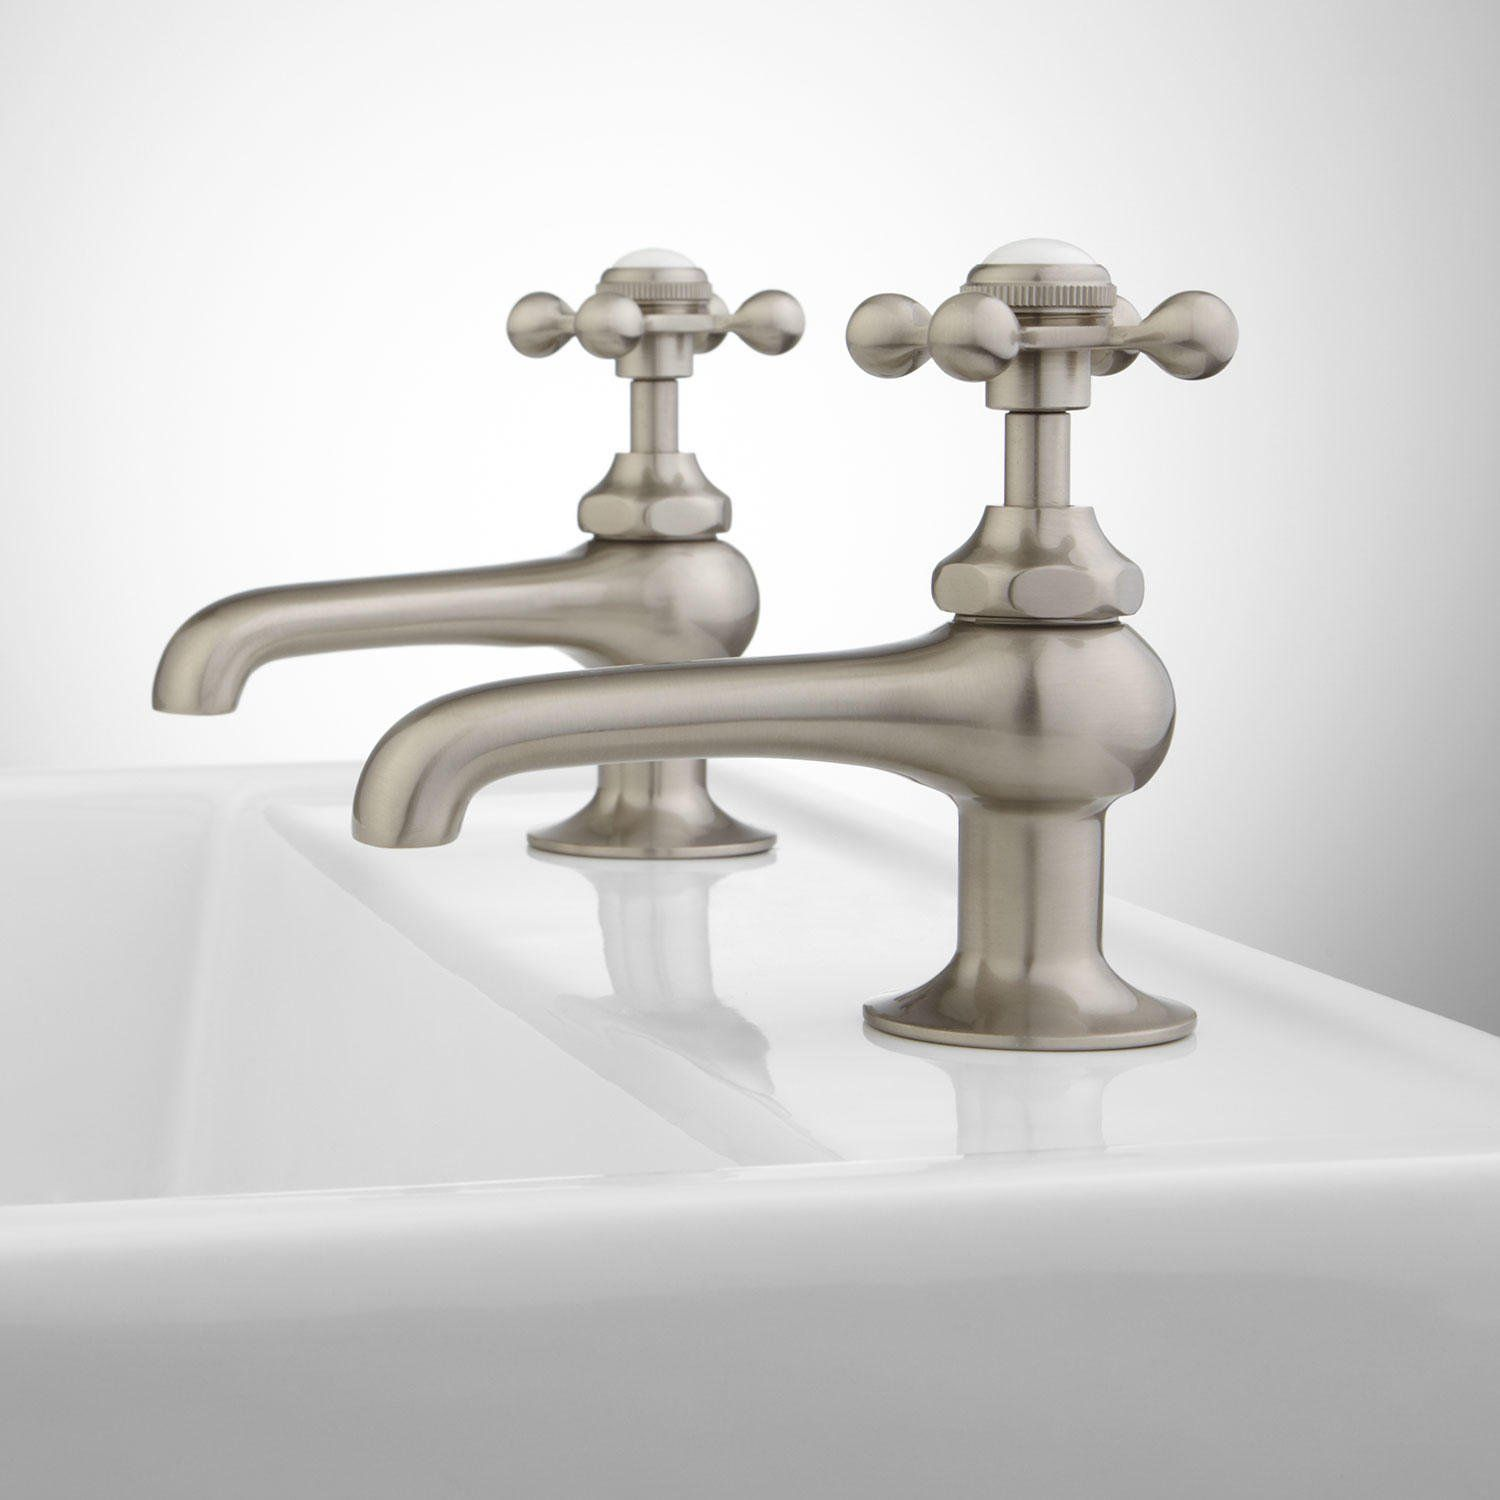 37 Incredible Water Faucet Design Ideas For Your Bathroom Sink